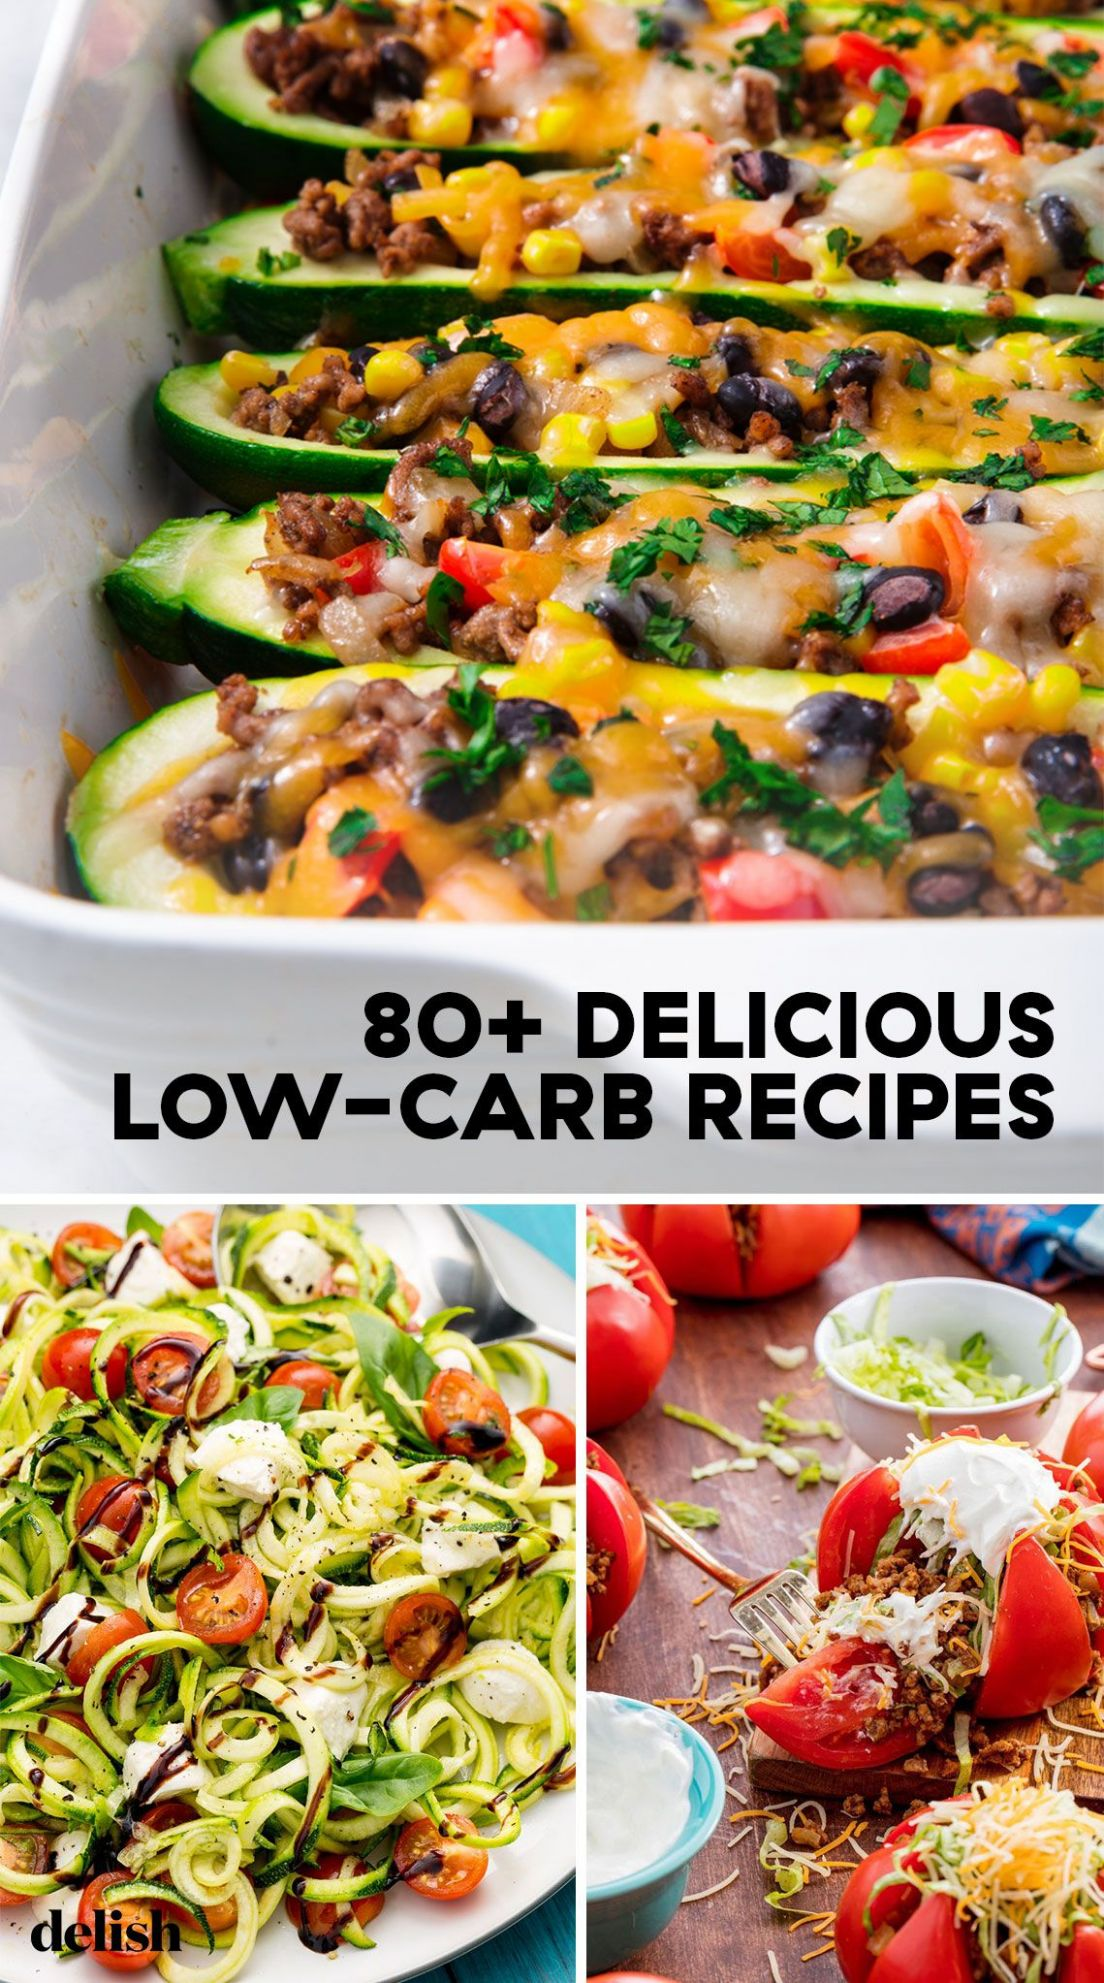 8+ Easy Low Carb Recipes - Best Low Carb Meal Ideas - Easy Recipes Low Carb